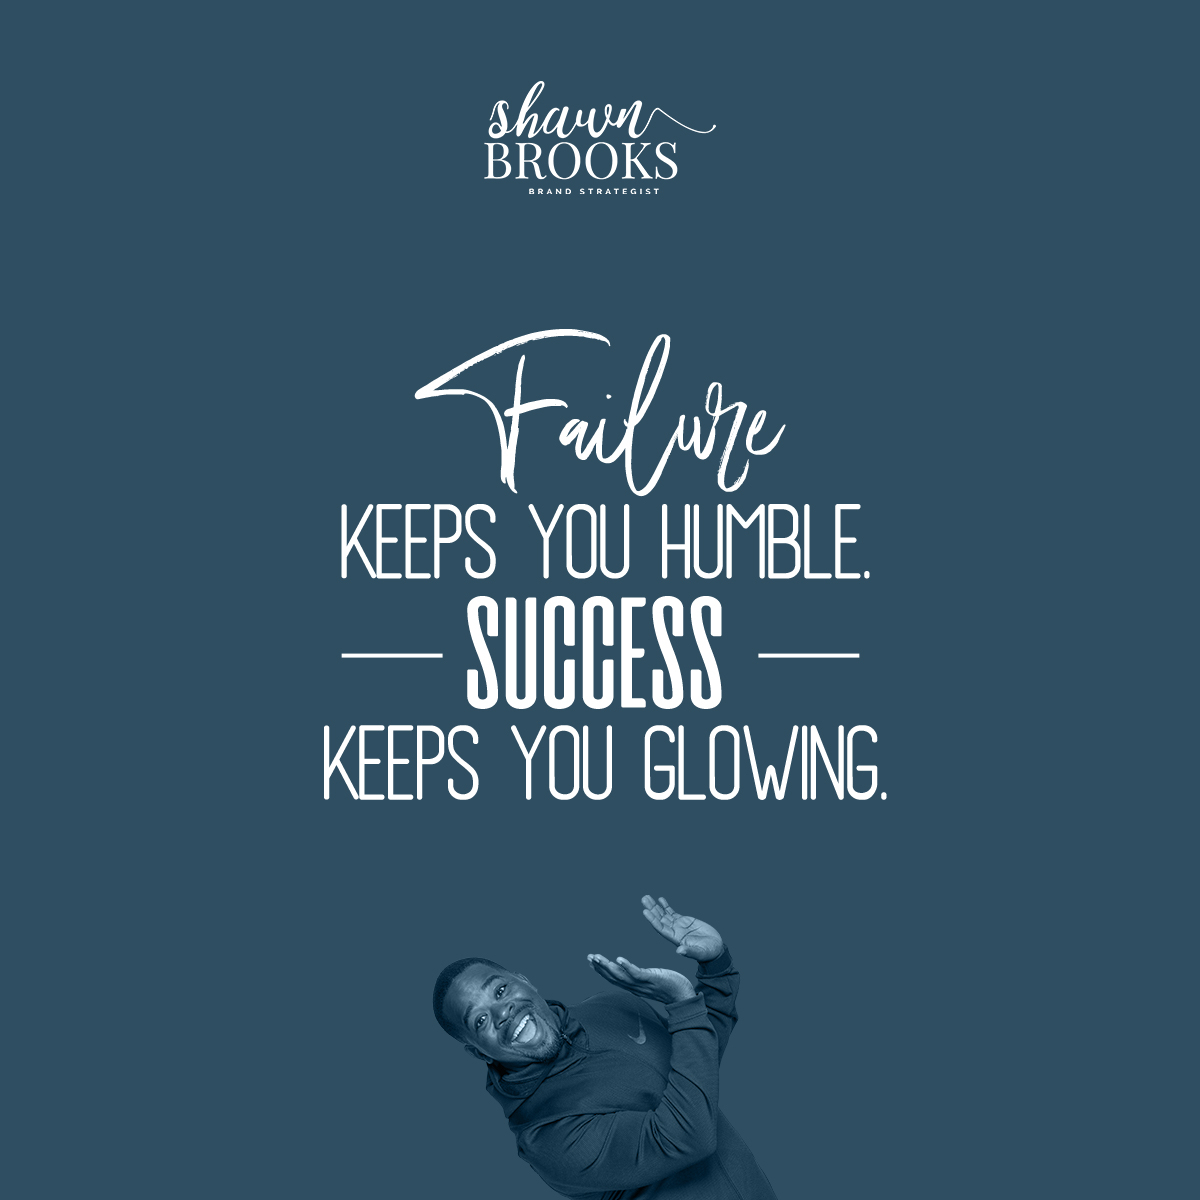 Failure keeps you humble.  Success keeps you glowing. . . .  #motivation #entrepreneur #business #inspiration #goals #love #lifestyle #entrepreneurship #quotes #quote #instagood #fitness #hustle #quoteoftheday